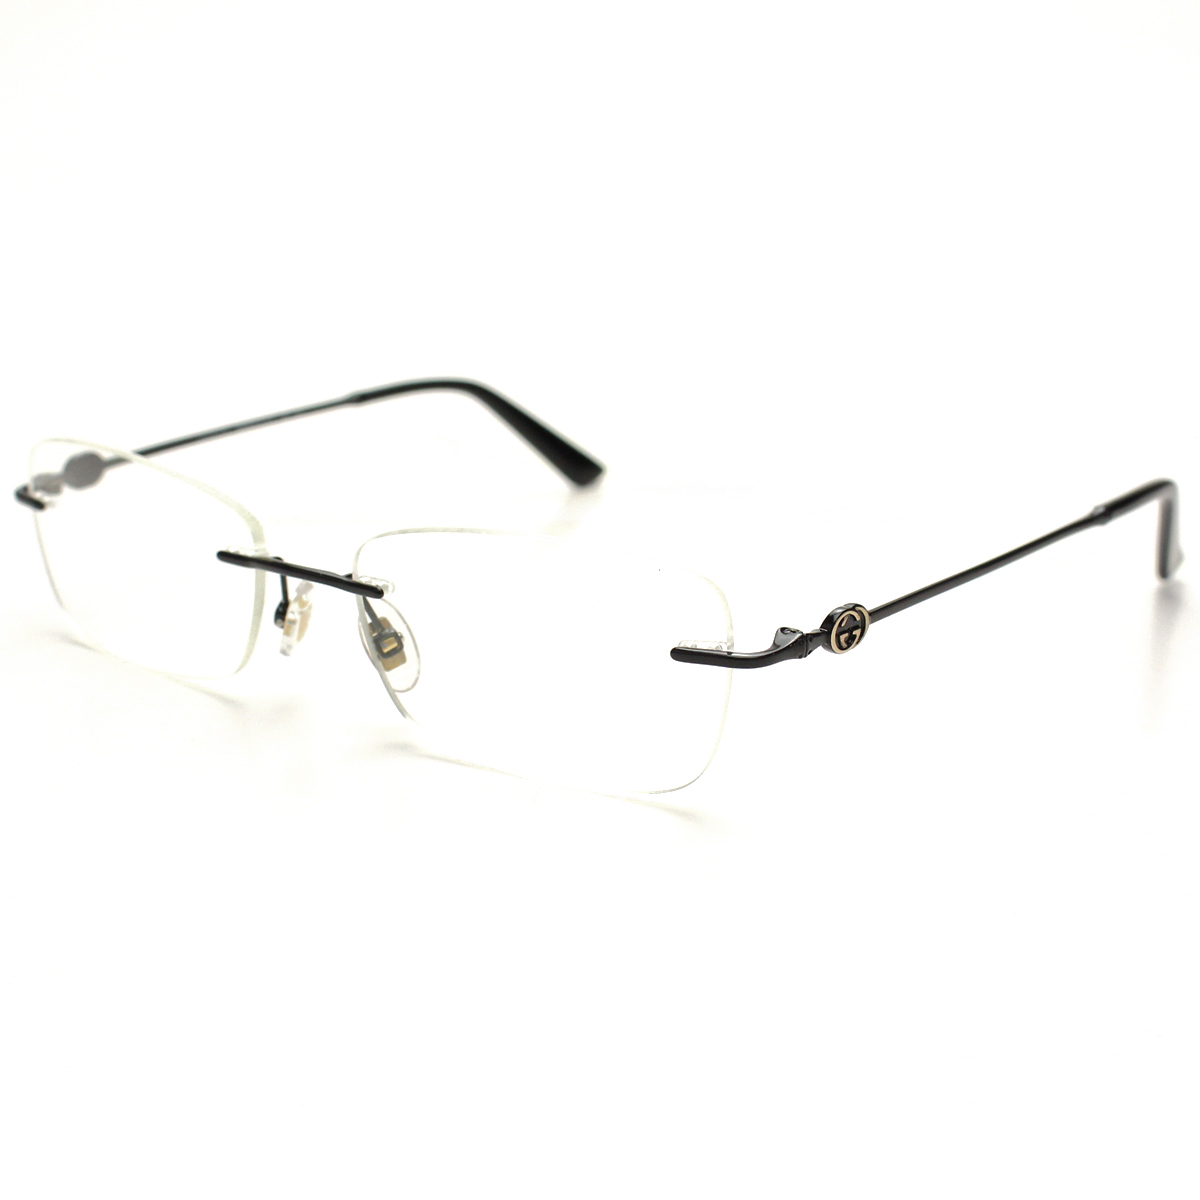 1efdf0b34 Bighit The total brand wholesale: Gucci (GUCCI) glasses 2896-006 (52)  clearing system( taxfree/send by EMS/authentic/A brand new item ) | Rakuten  Global ...